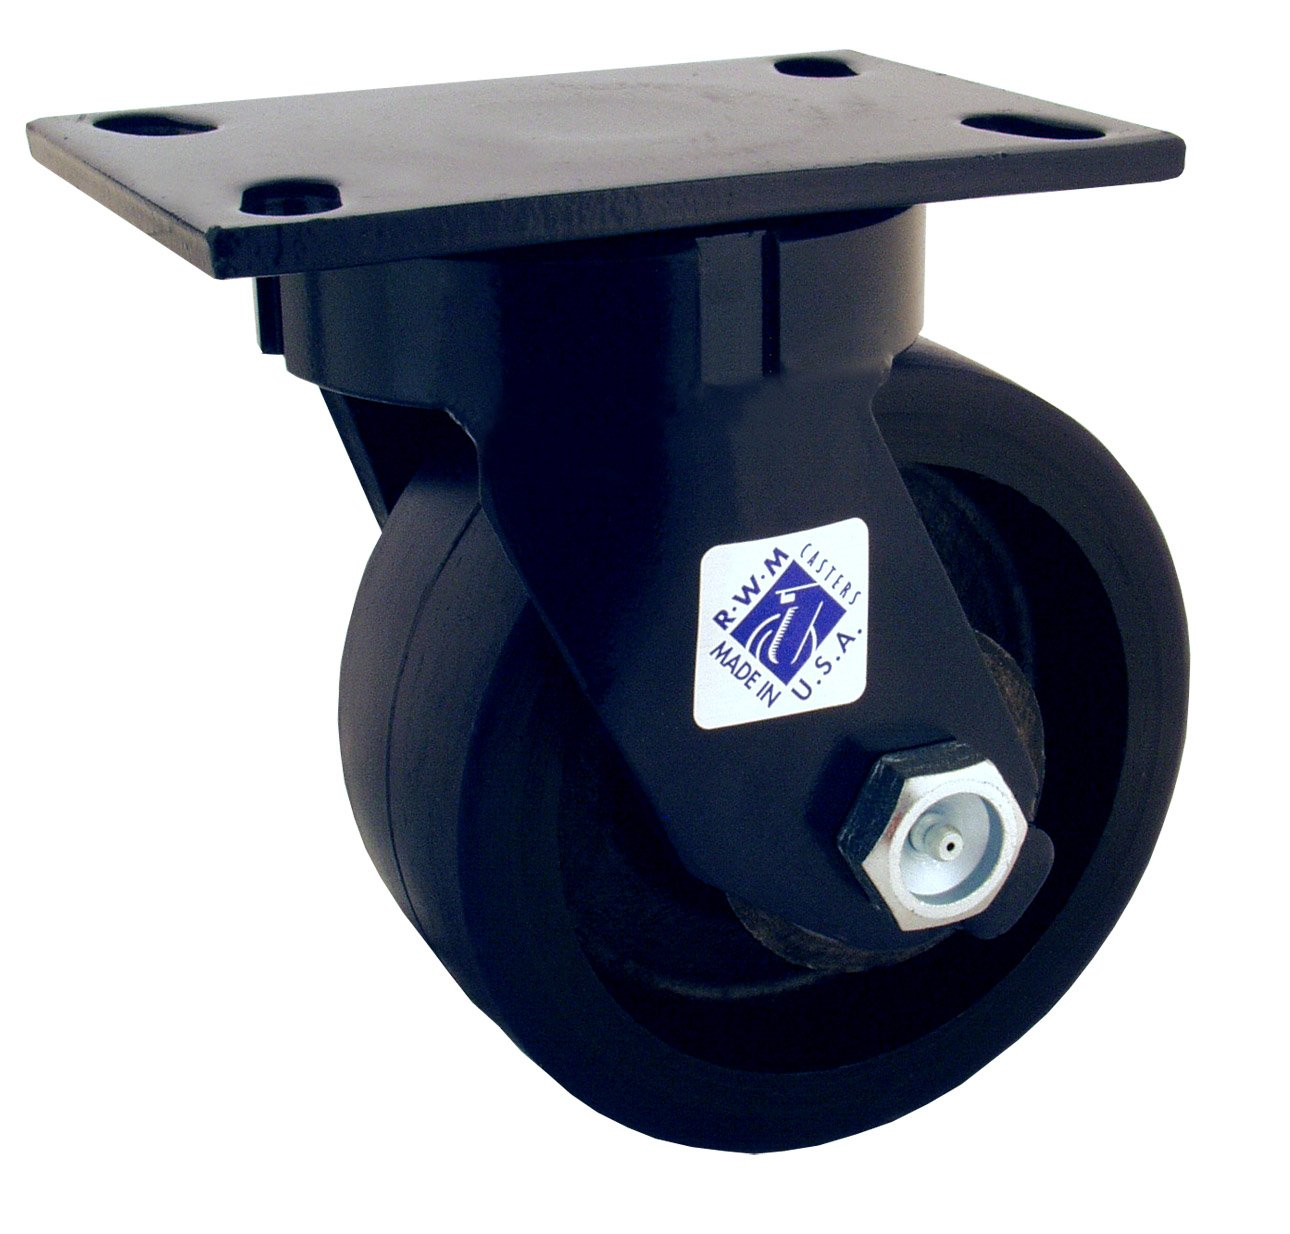 RWM Casters 75 Series Plate Caster, Swivel, Kingpinless, Forged Steel Wheel, Roller Bearing, 5000 lbs Capacity, 6'' Wheel Dia, 2-1/2'' Wheel Width, 7-1/2'' Mount Height, 6-1/2'' Plate Length, 4-1/2'' Plate Width